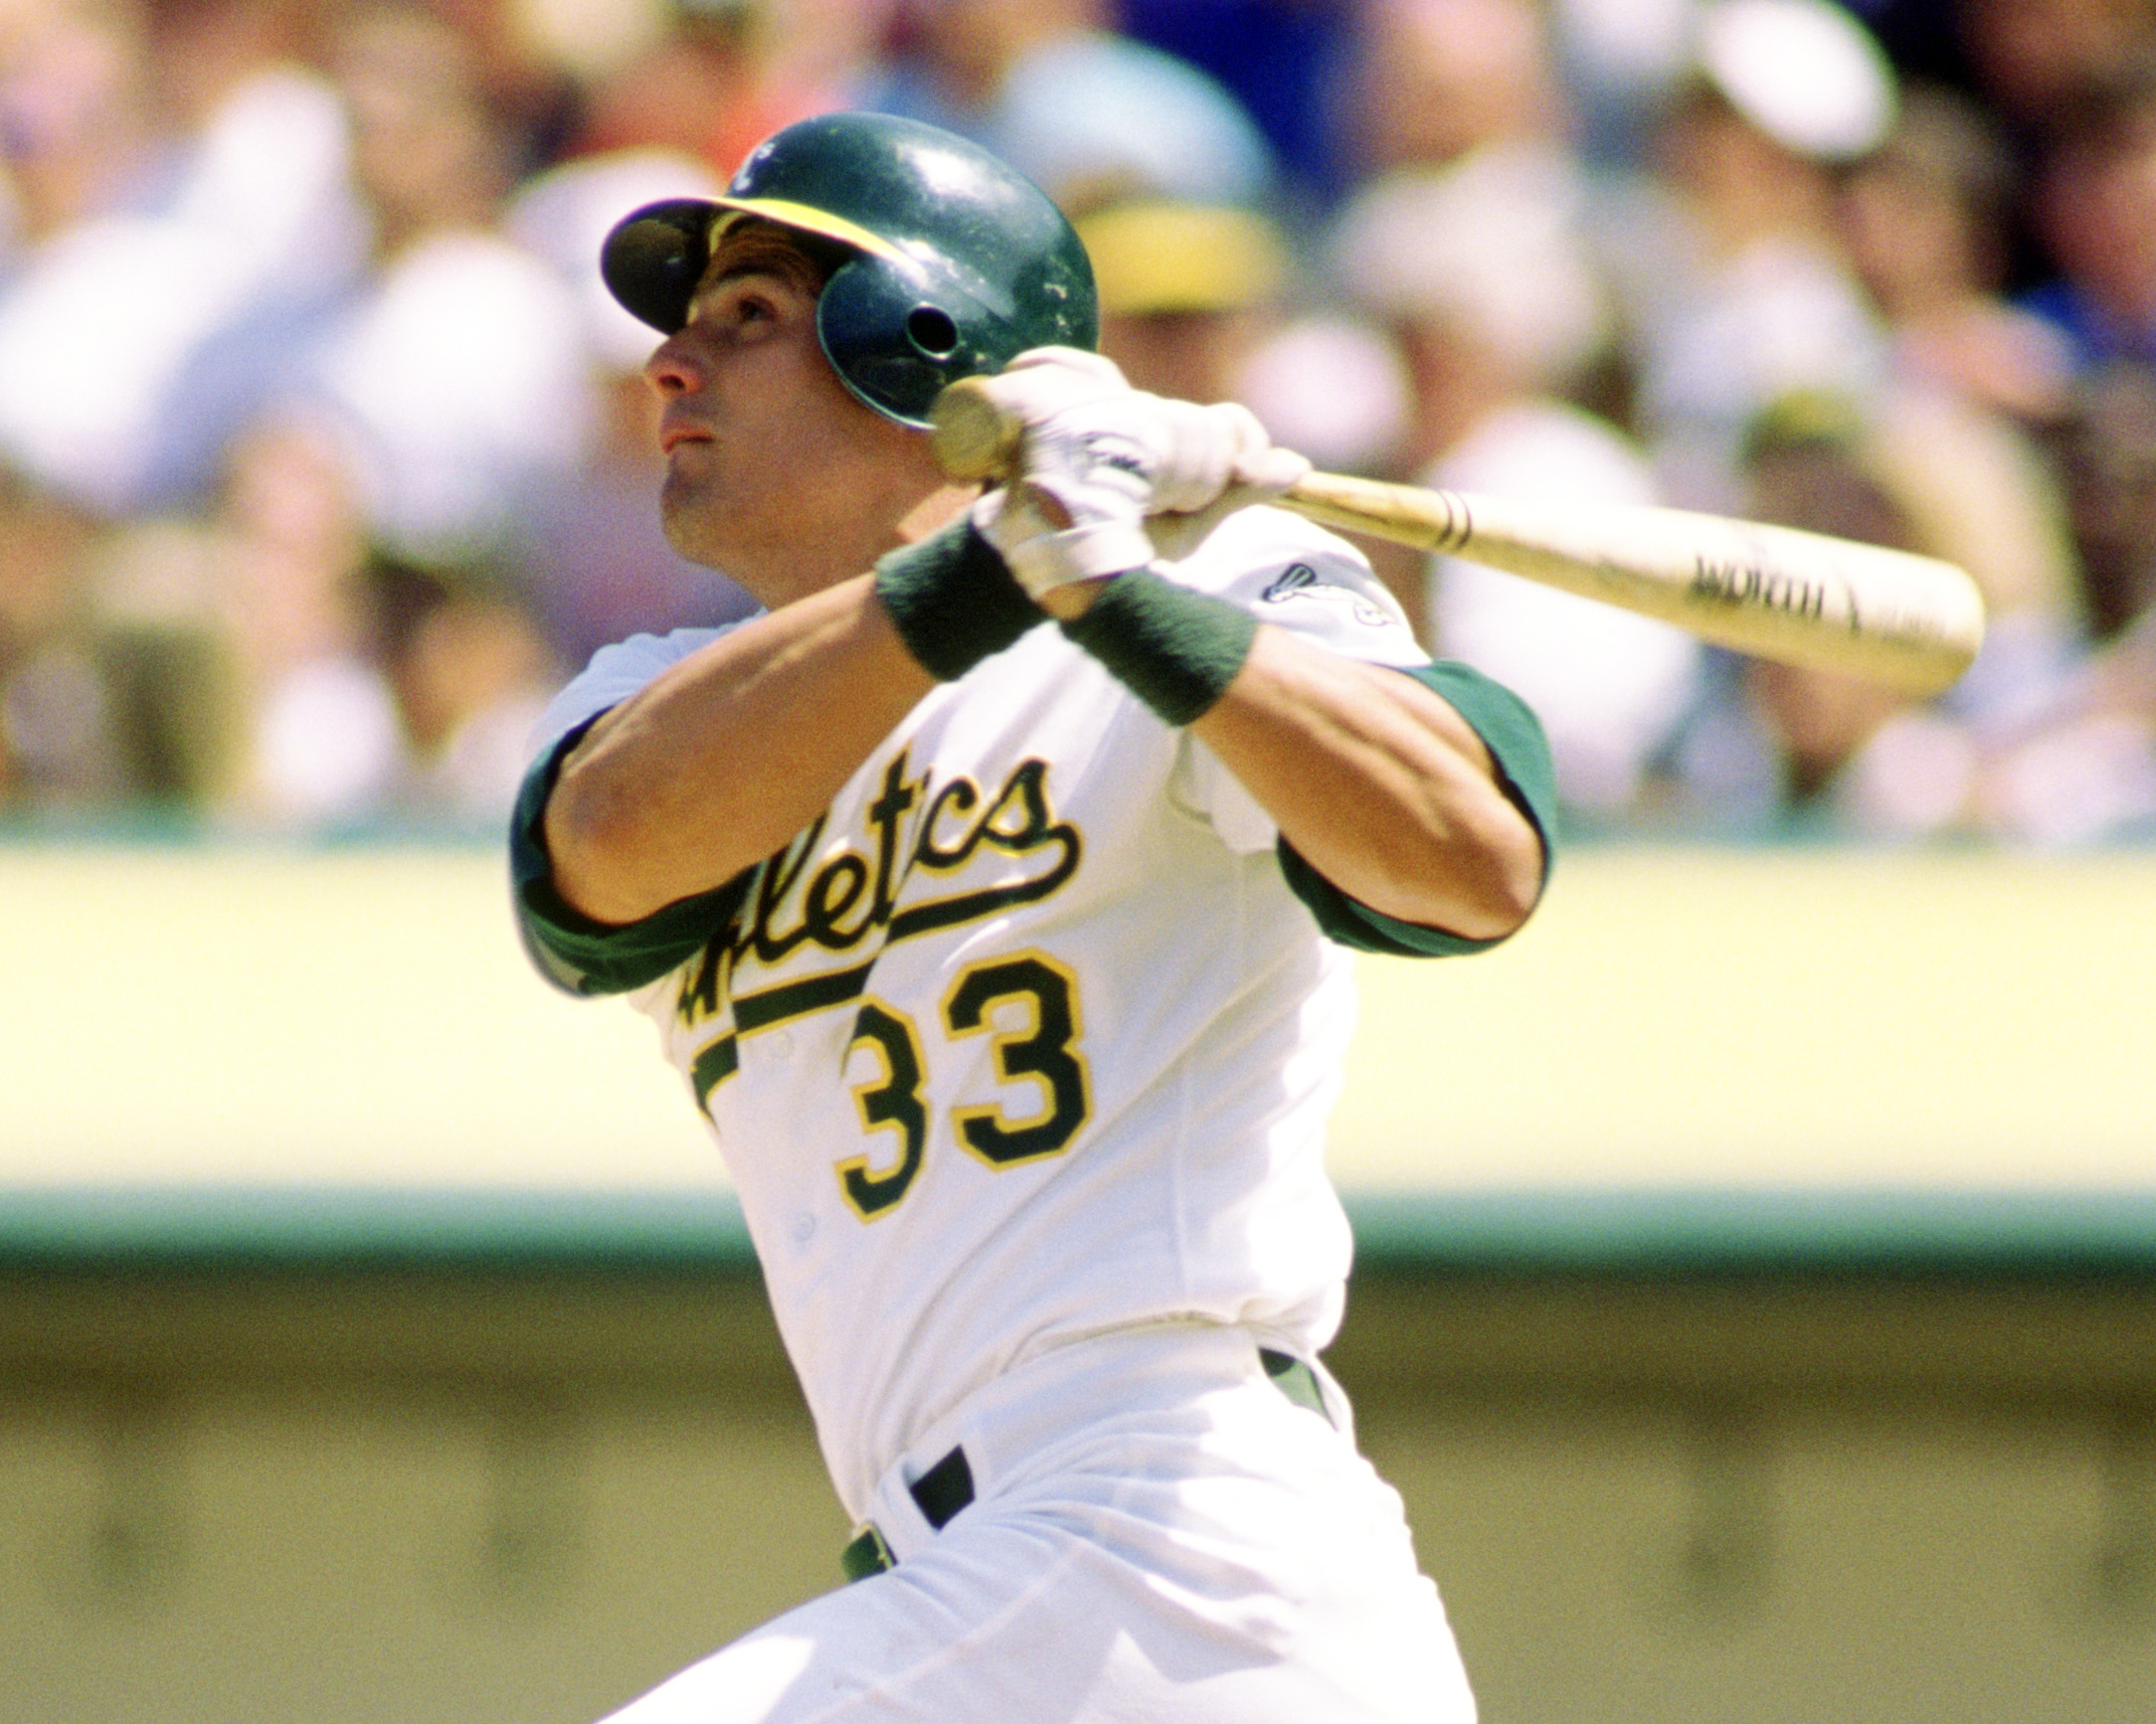 Jose Canseco's Promise to His Dying Mother Triggered His Steroid Use